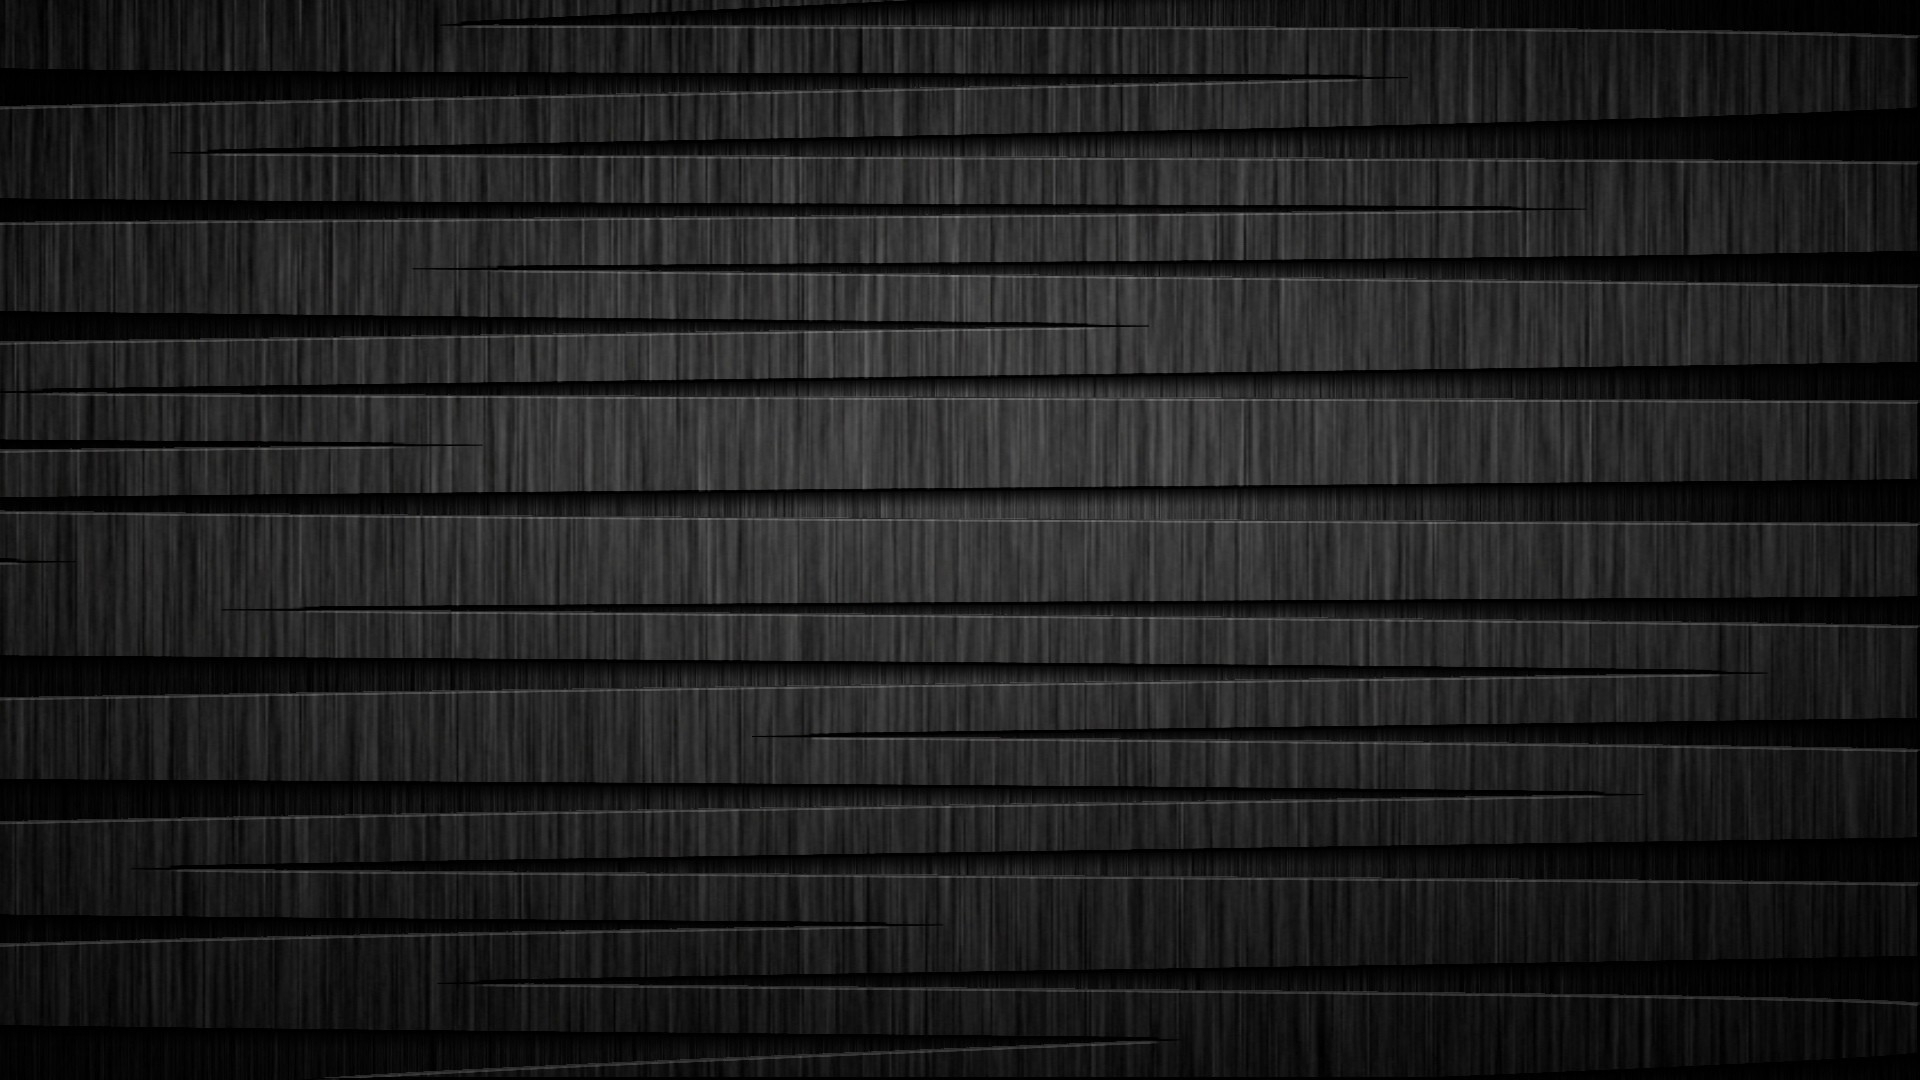 black abstract background | stuff to buy | pinterest | abstract